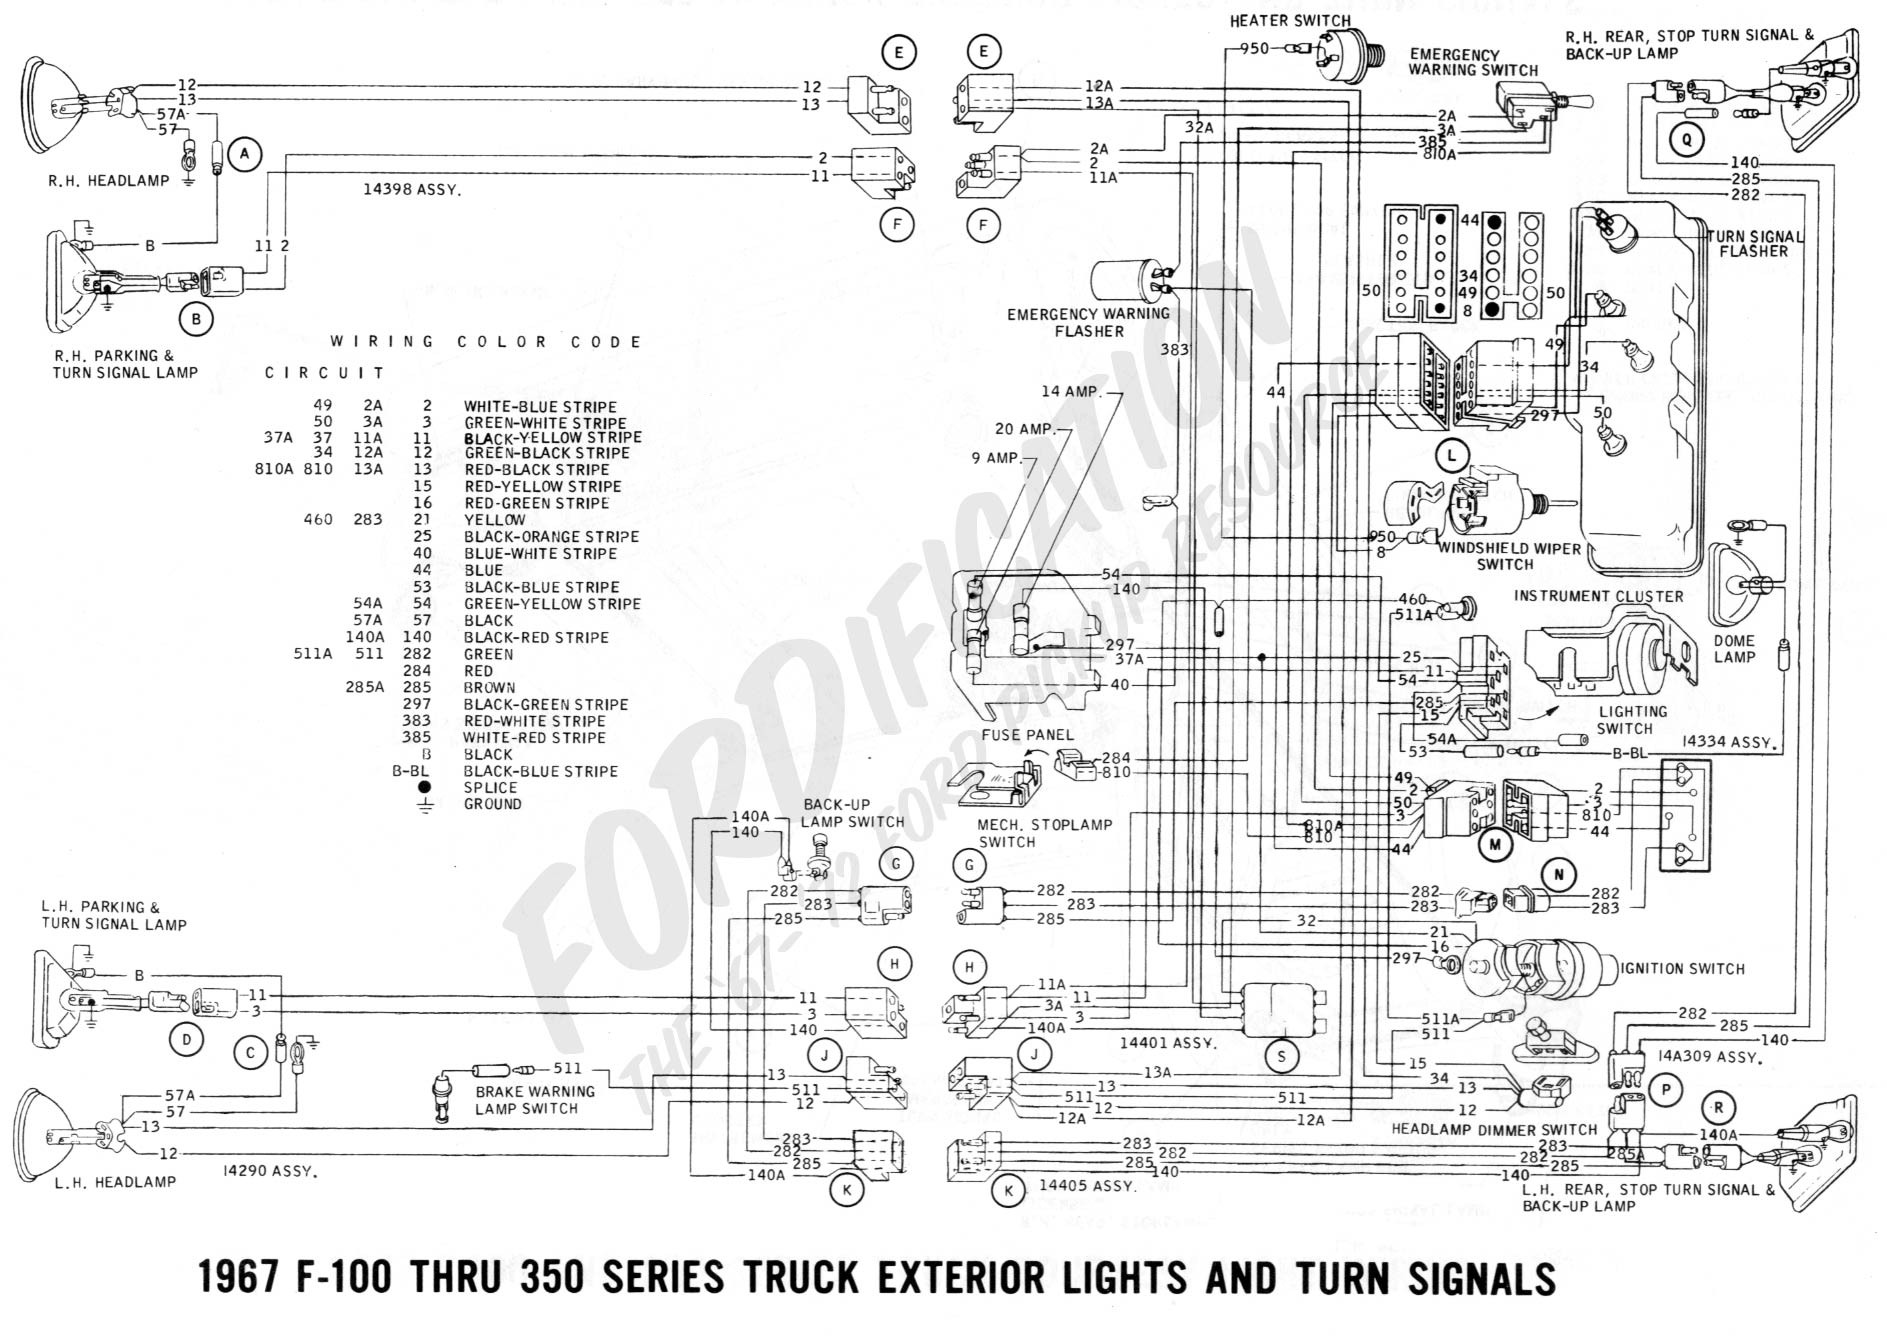 turn signal wiring diagram 1956 ford f100 turn signal wiring diagram rh sellfie co